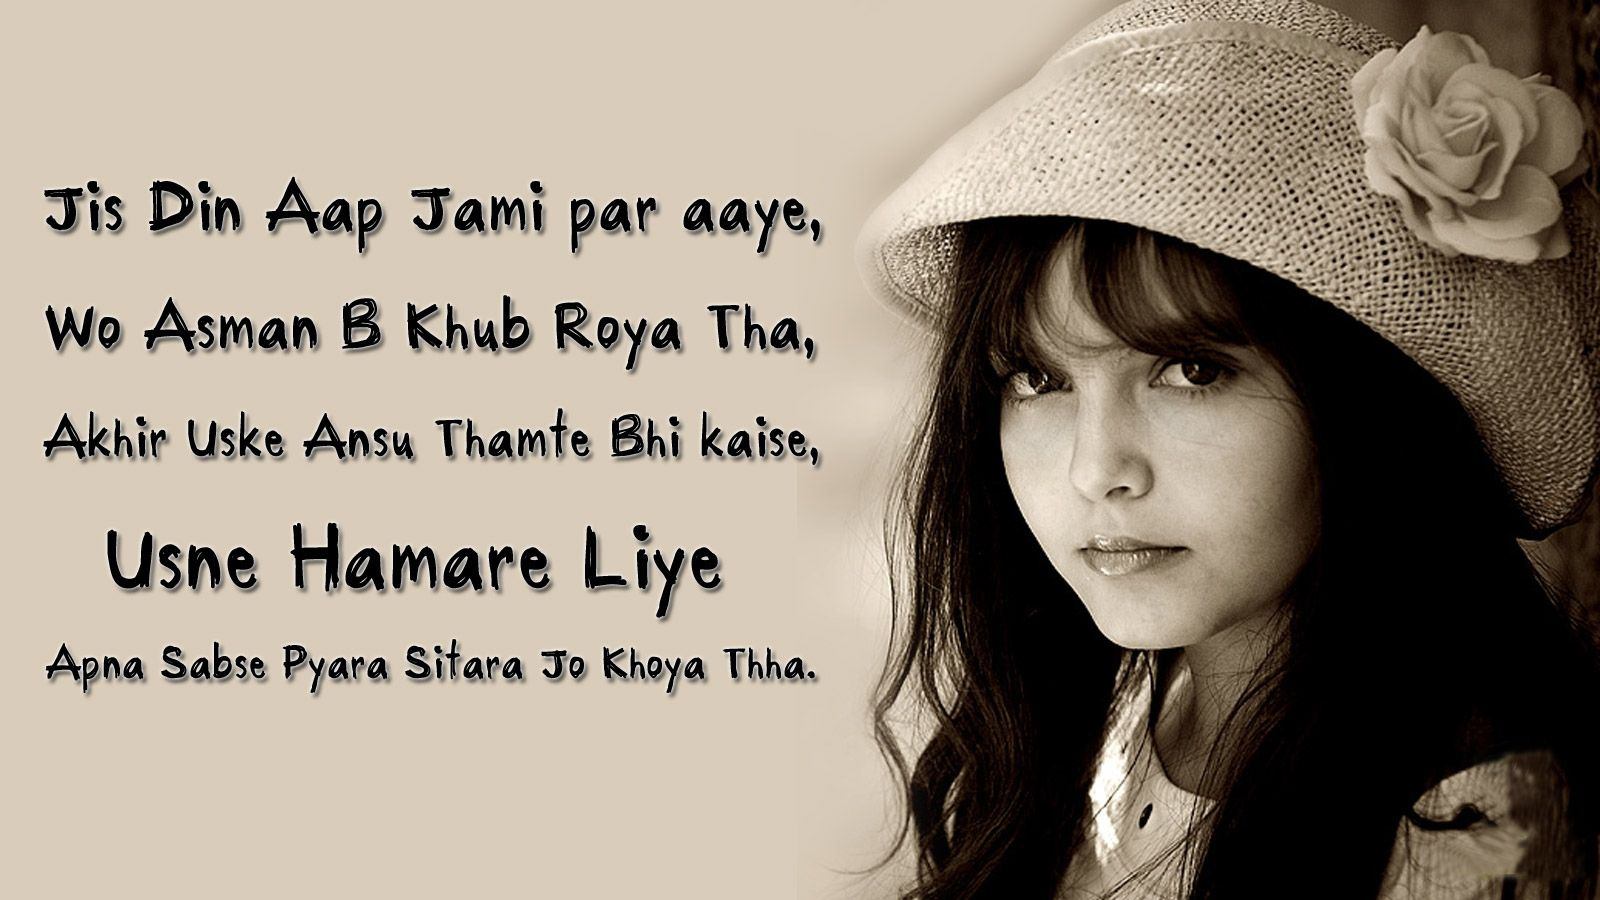 Download Wallpaper Of Shayari On Love Hd Wallpaper Of Shayari On